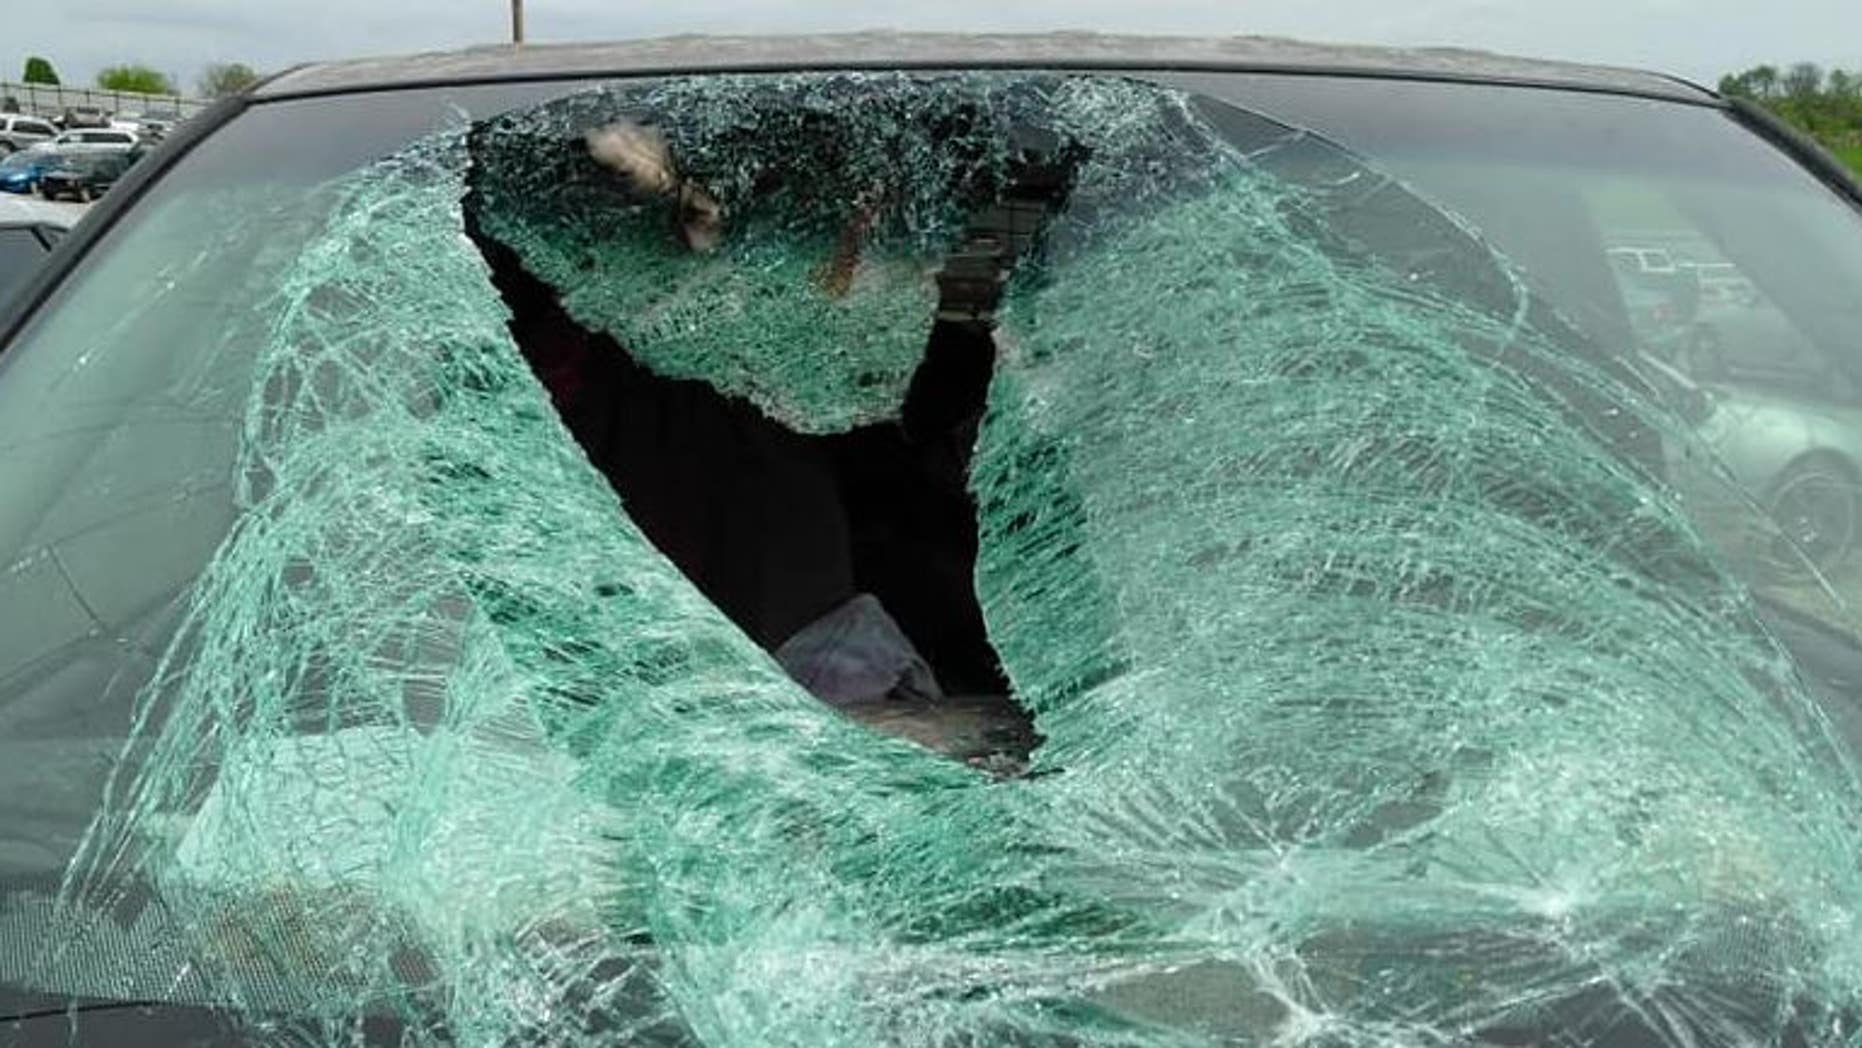 A wild turkey crashed into the windshield of a car traveling along Highway 60 to Springfield, Mo.